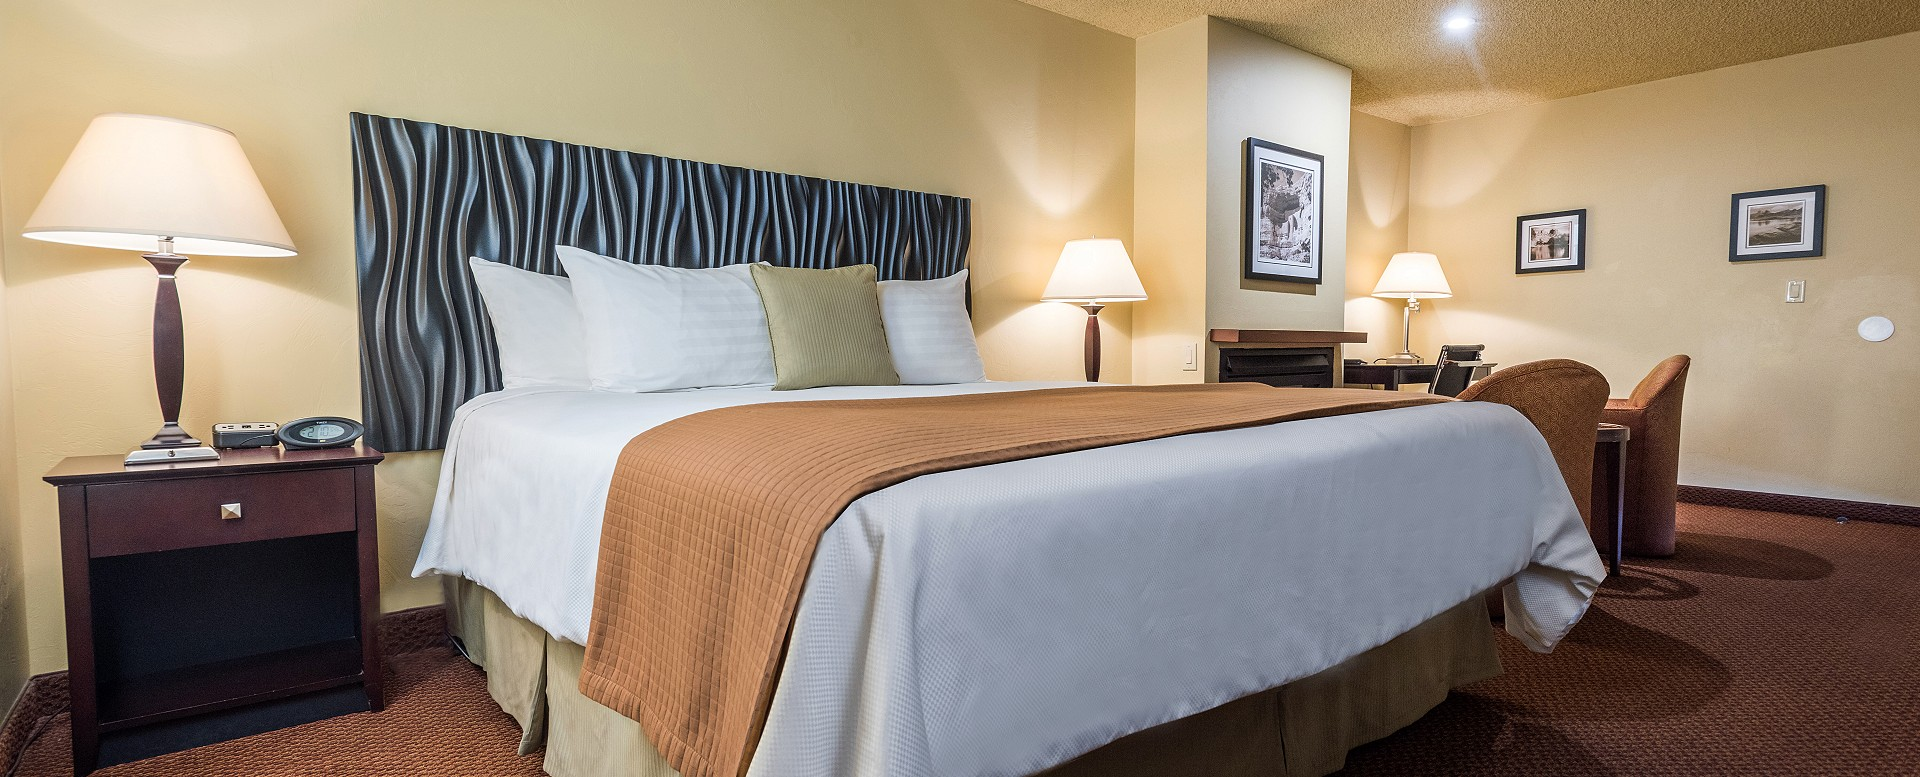 Best Western Plus Inn of Sedona-King Guestroom